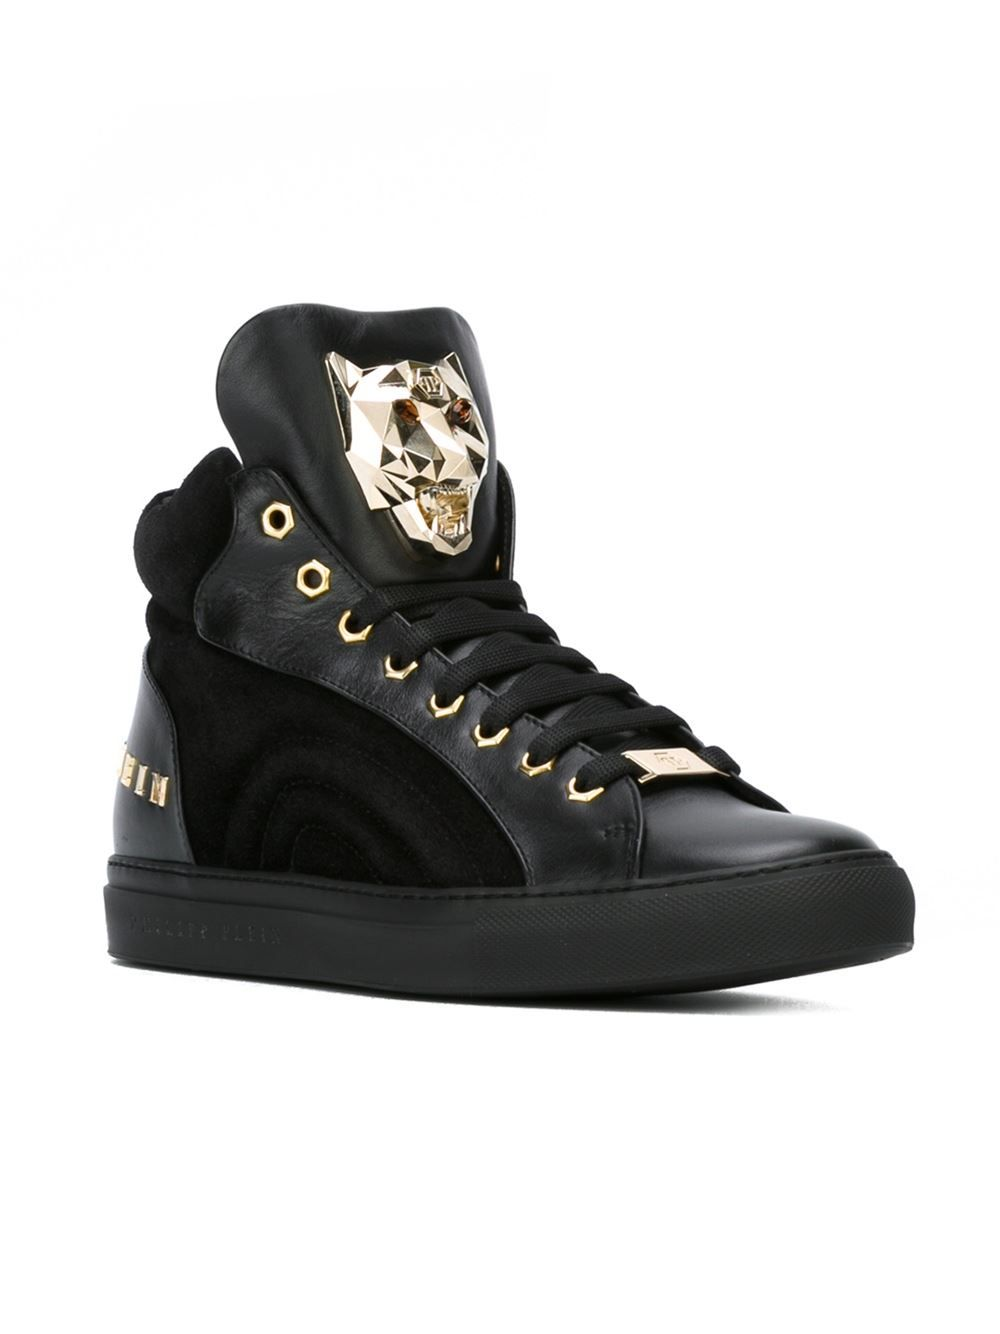 d82e5dcc53e6 Philipp Plein  on  High-top-sneakers - O  - Farfetch.com   MEN S ...